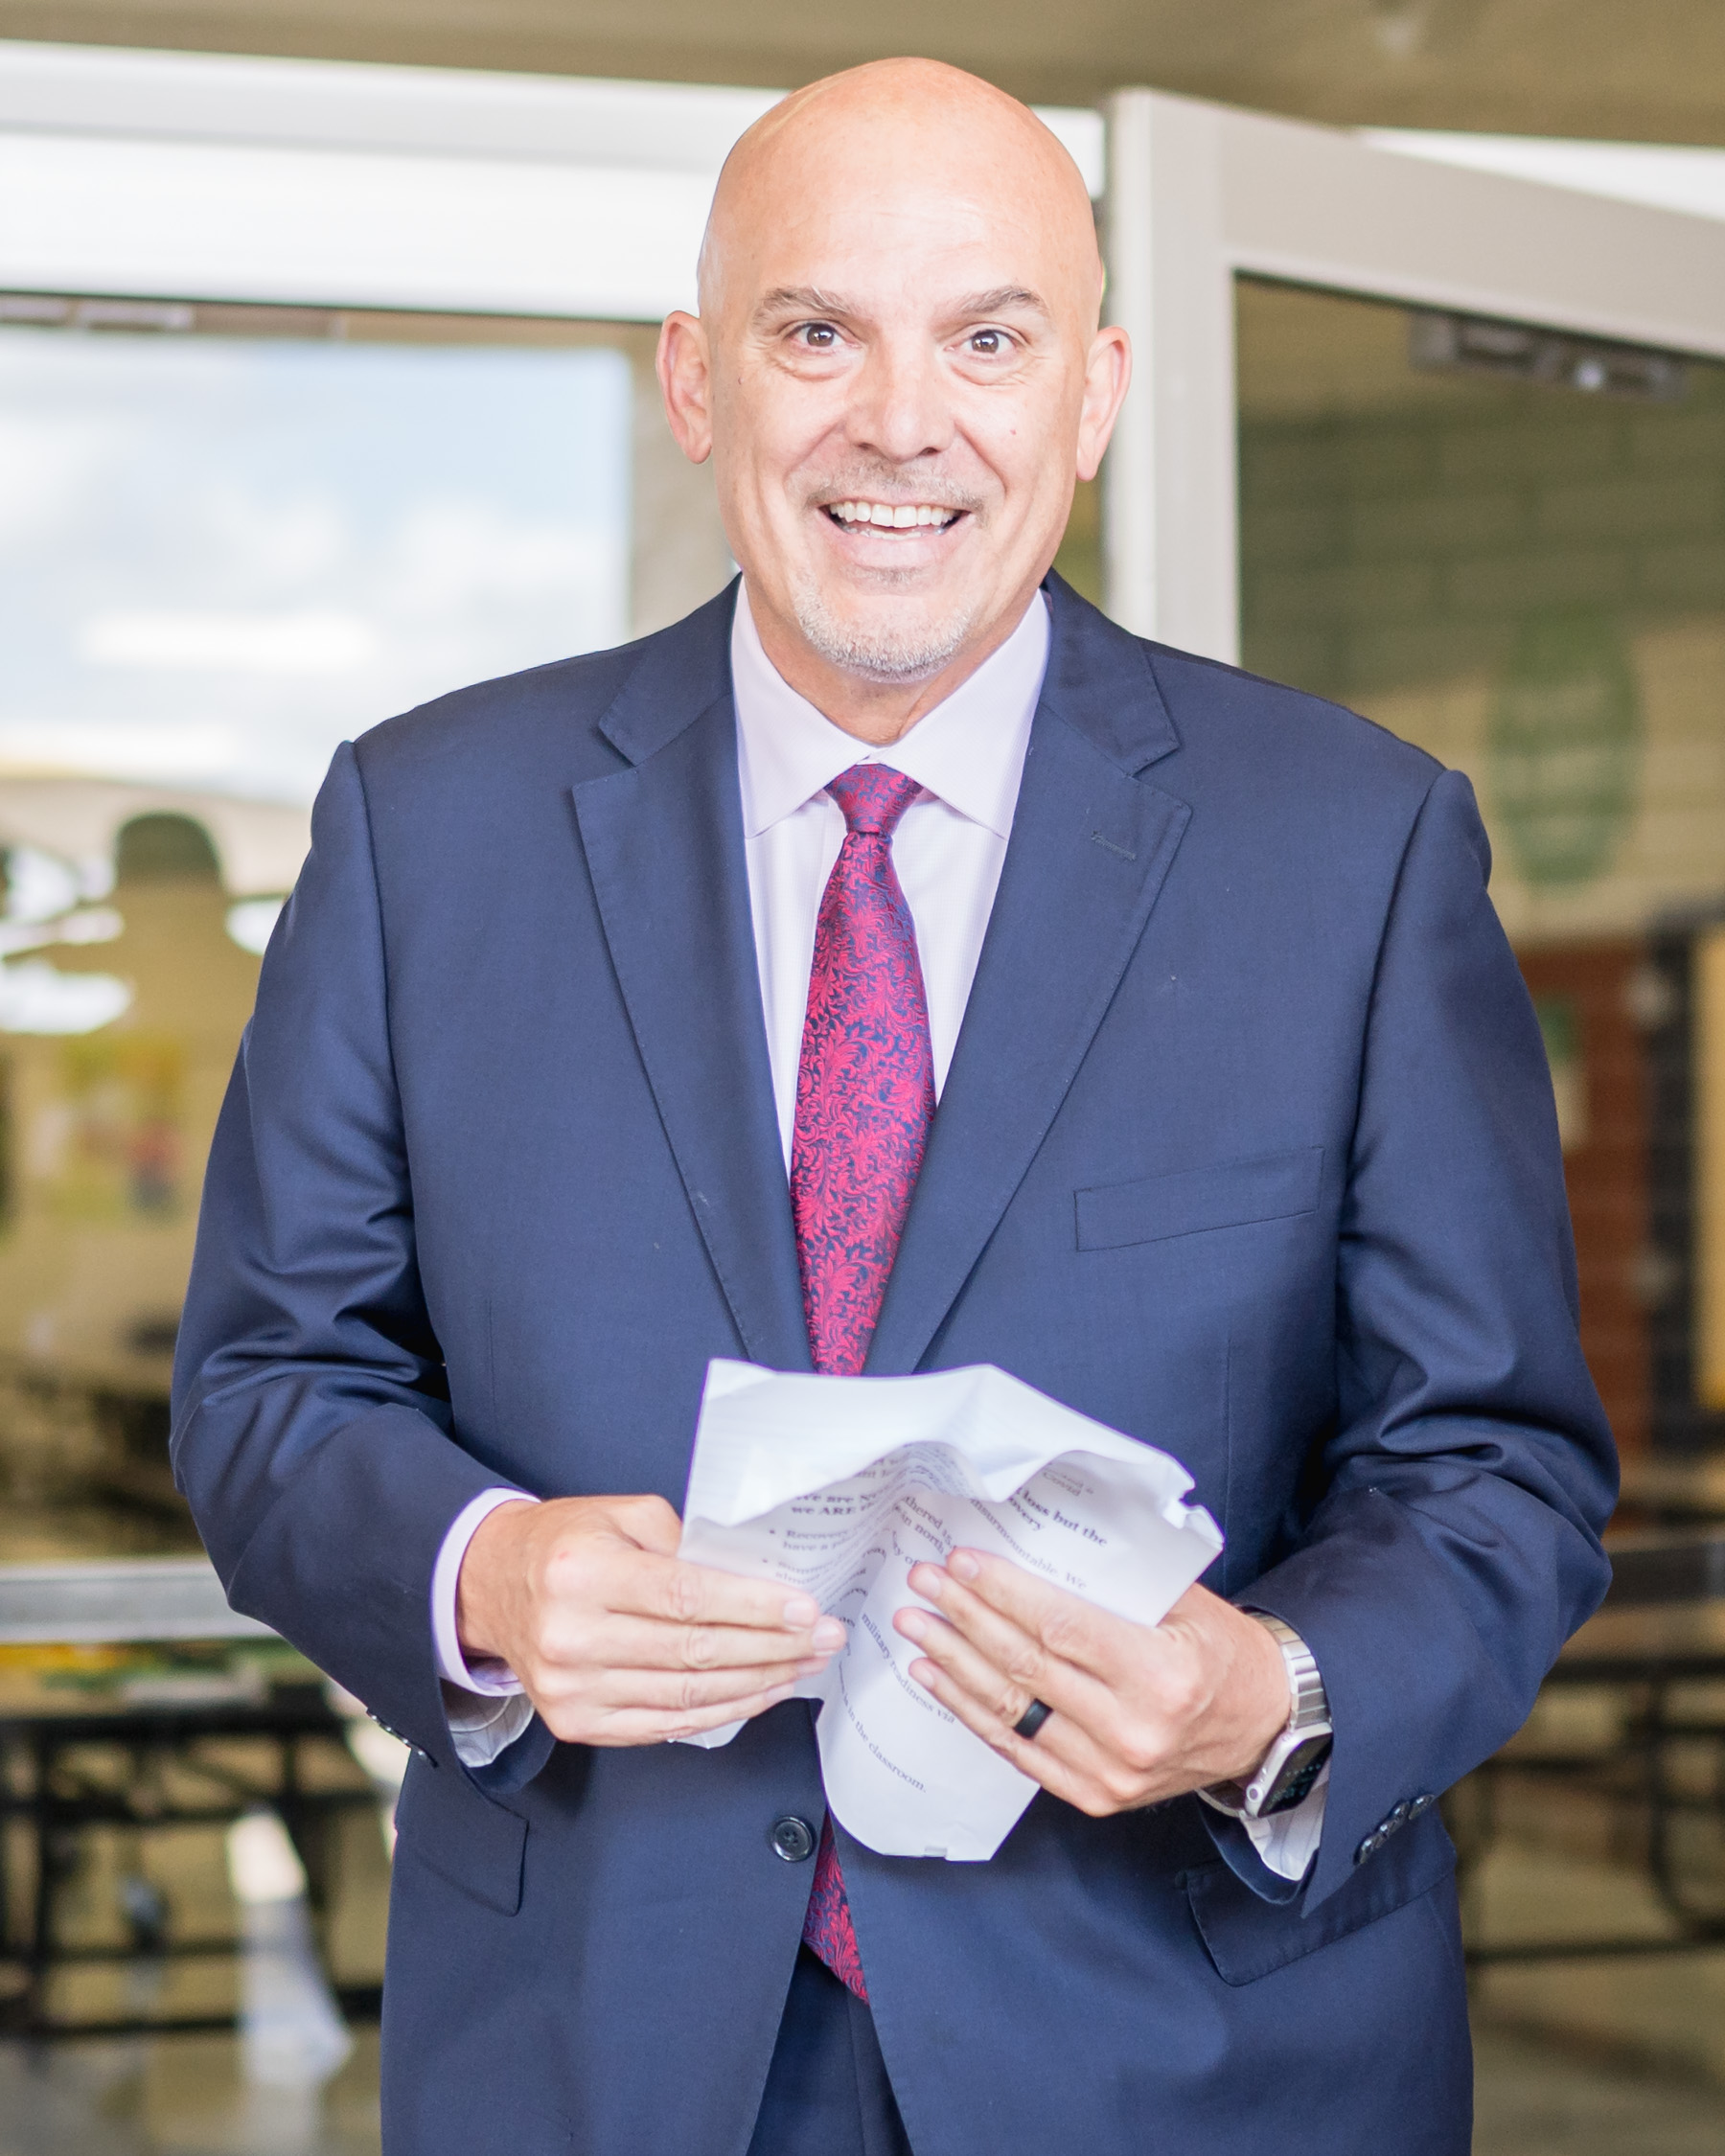 man in suit smiles and holds papers